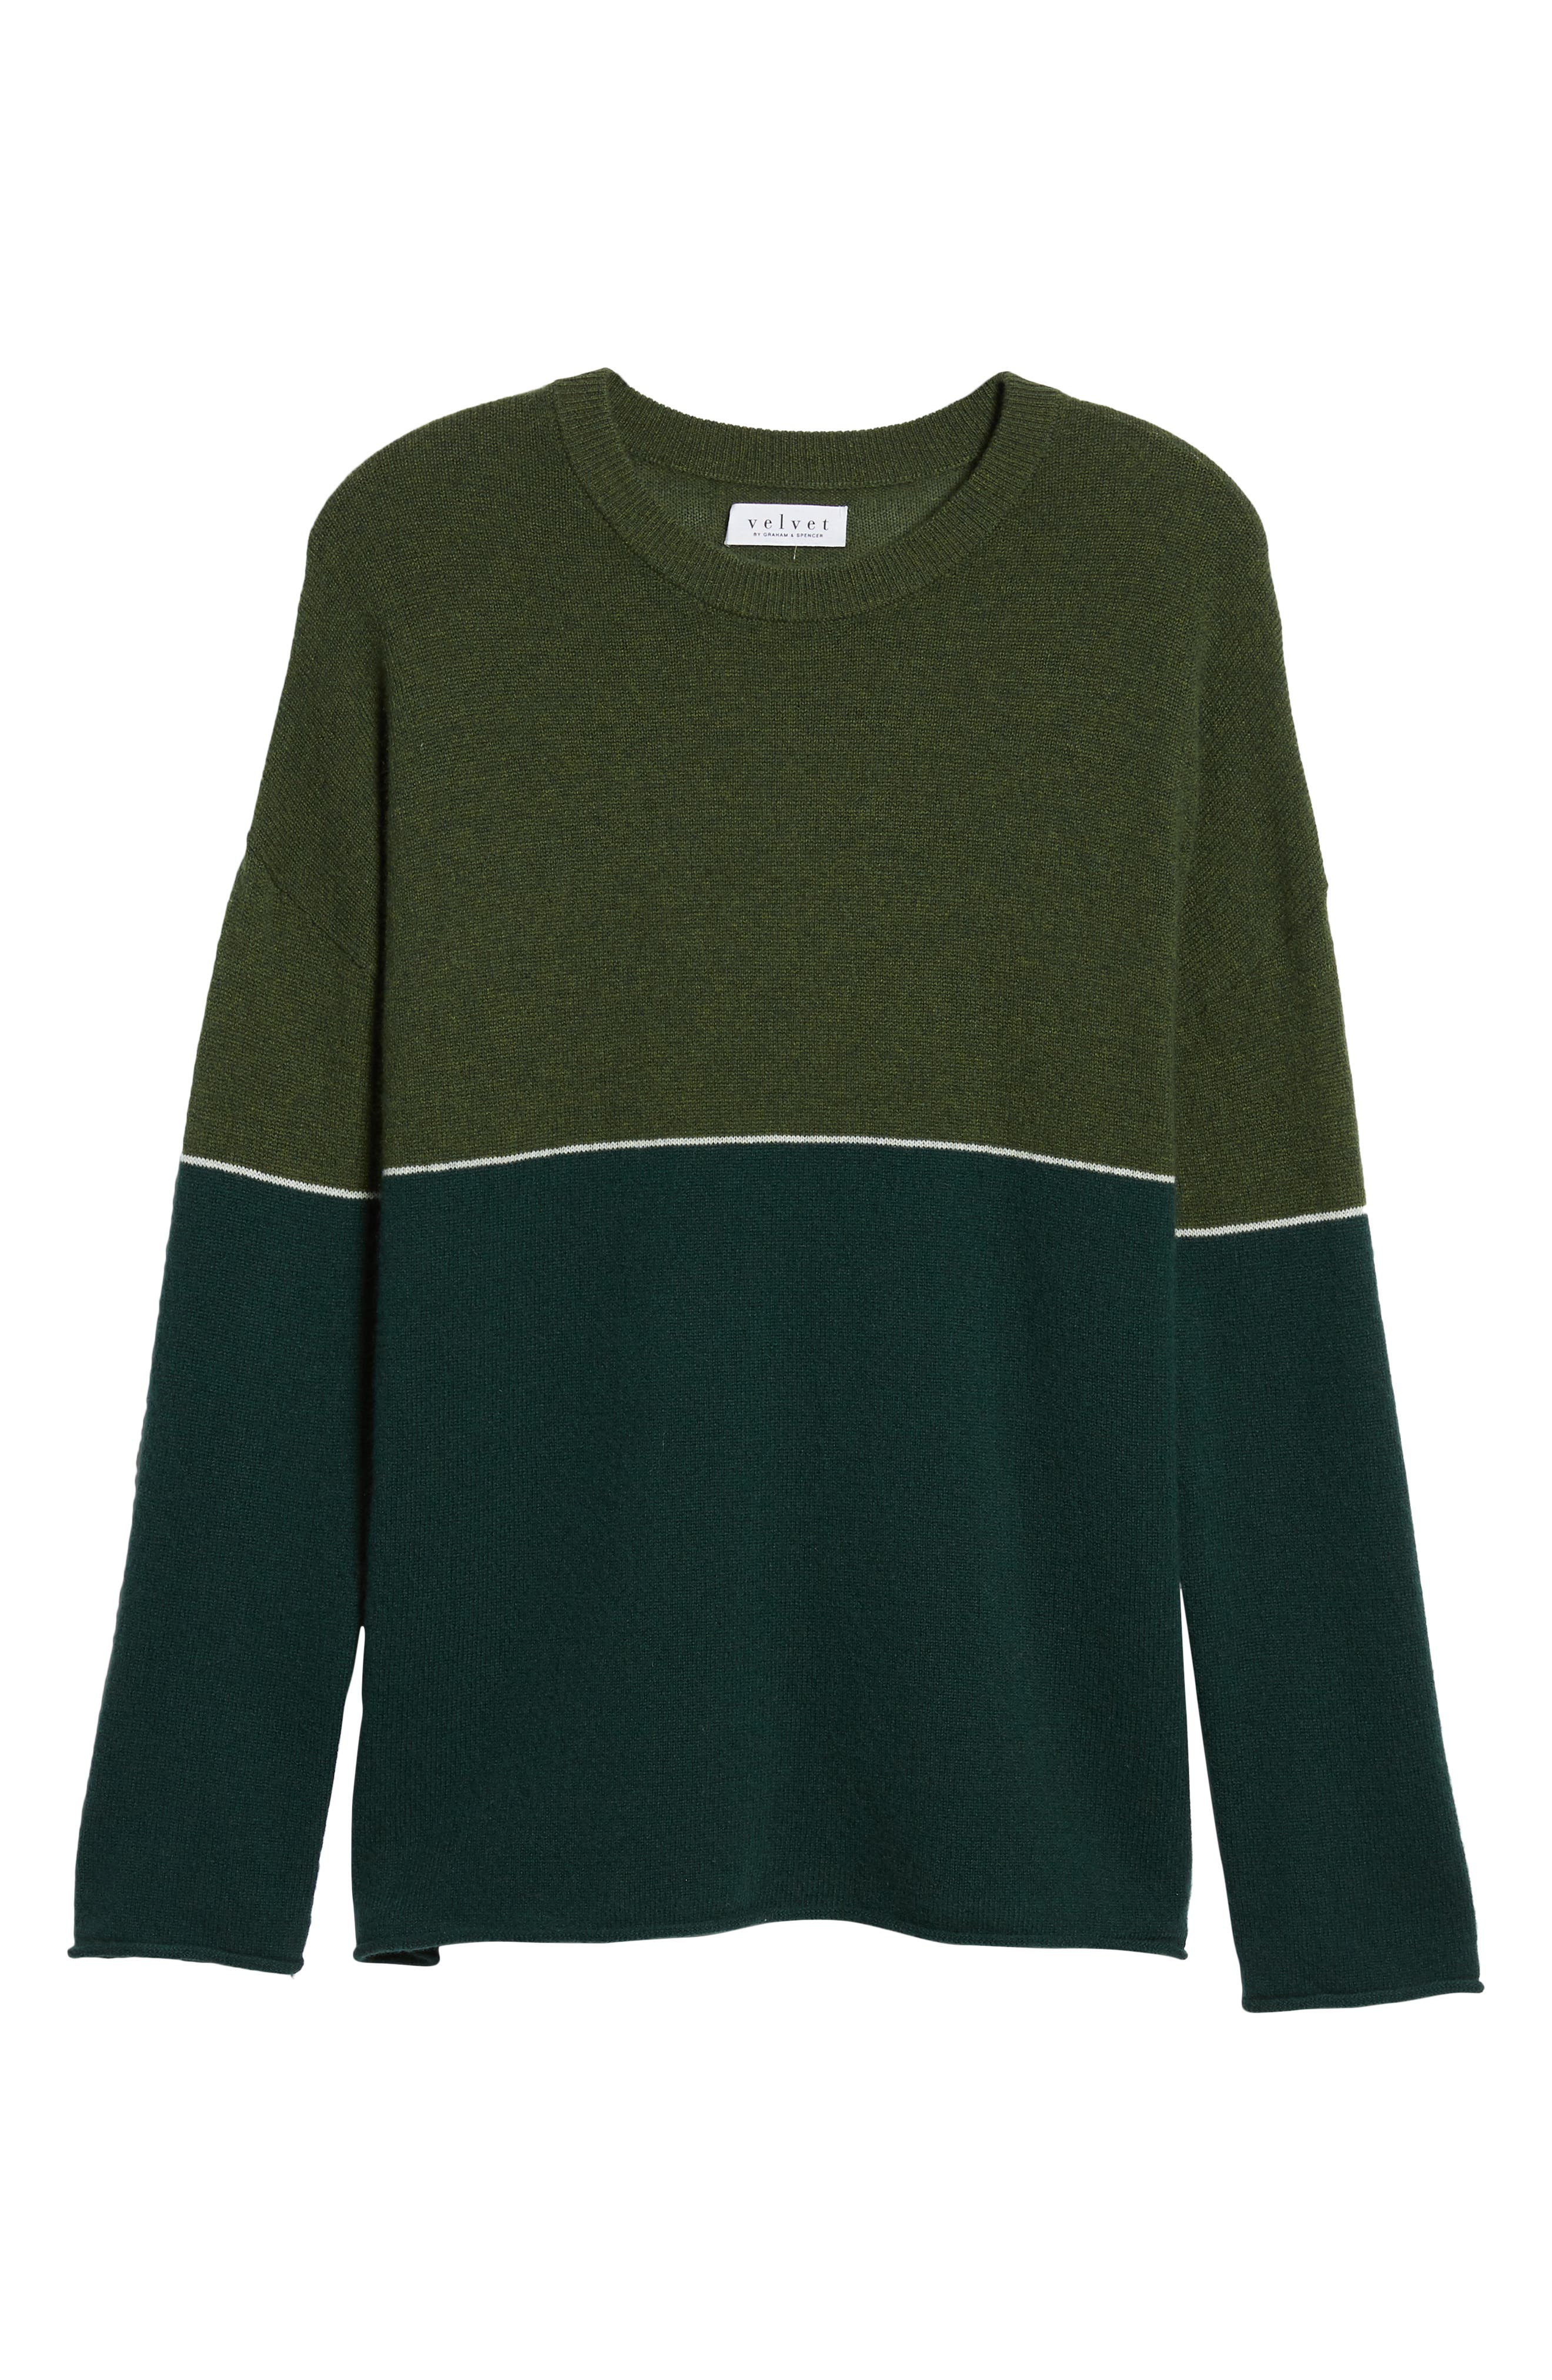 Cashmere Colorblock Sweater,                             Alternate thumbnail 6, color,                             FOREST/ ARMY